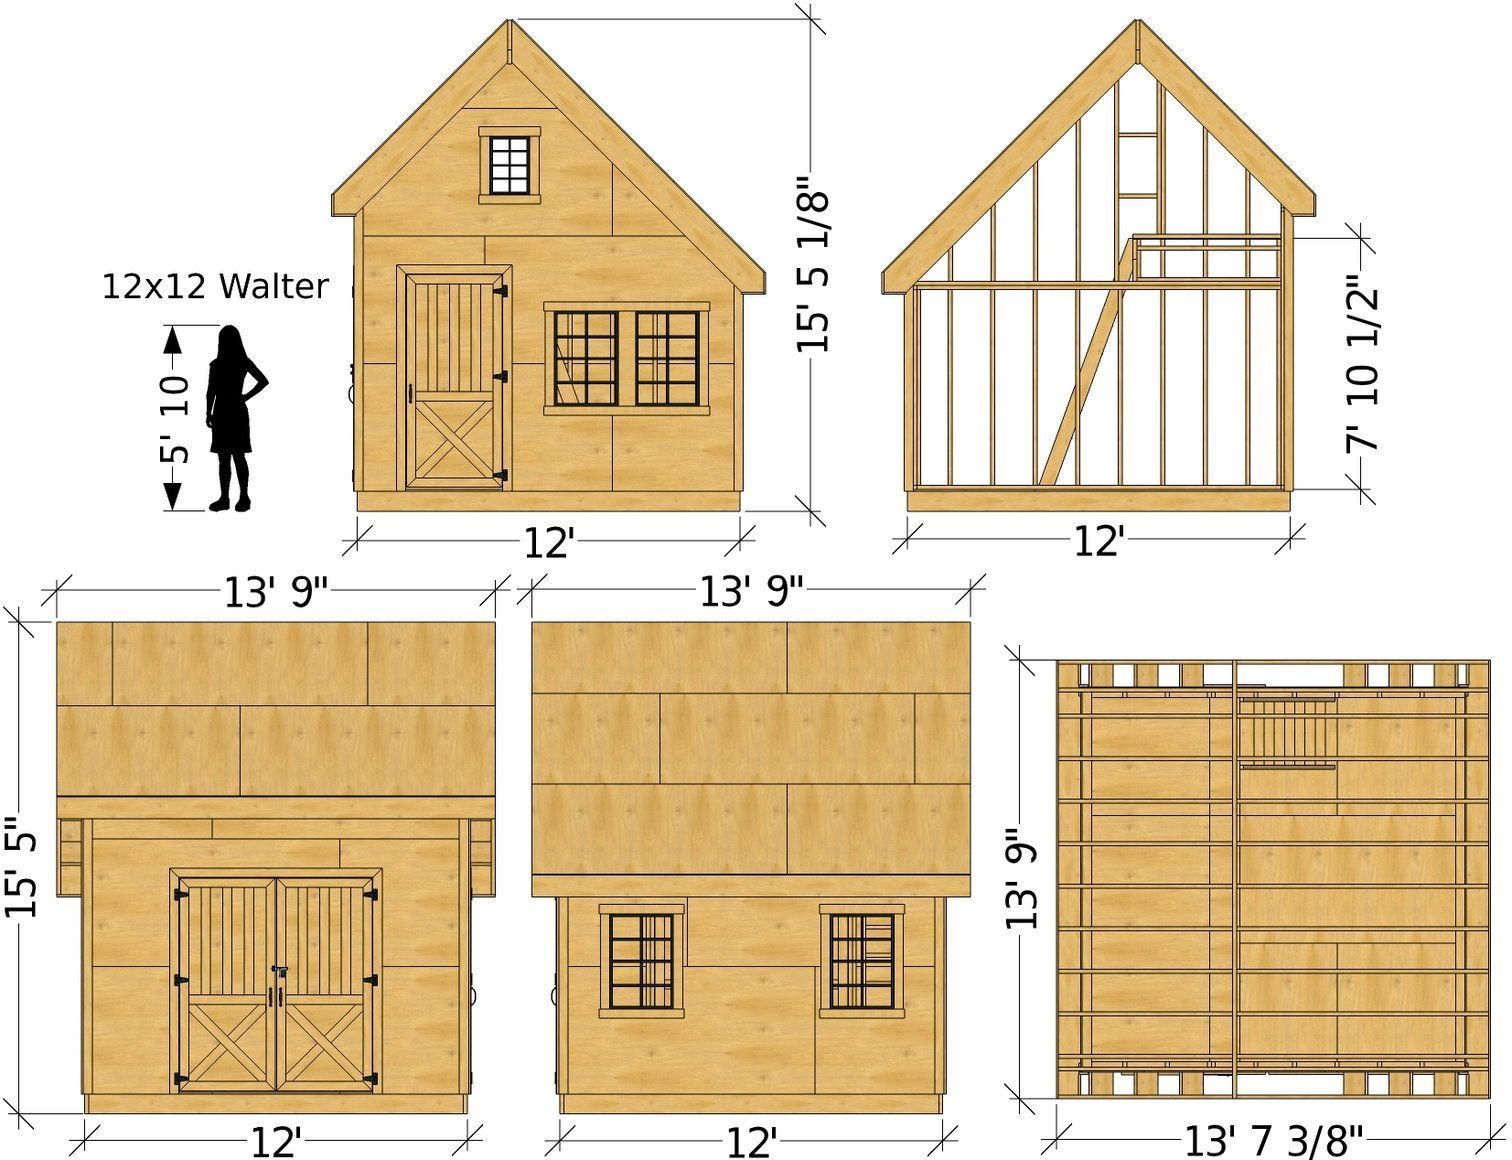 Walter Shed Plan 10x10 12x12 Sizes Gable Garden Shed W Loft Paul S Sheds Shed Plan Shed Plans Diy Shed Plans